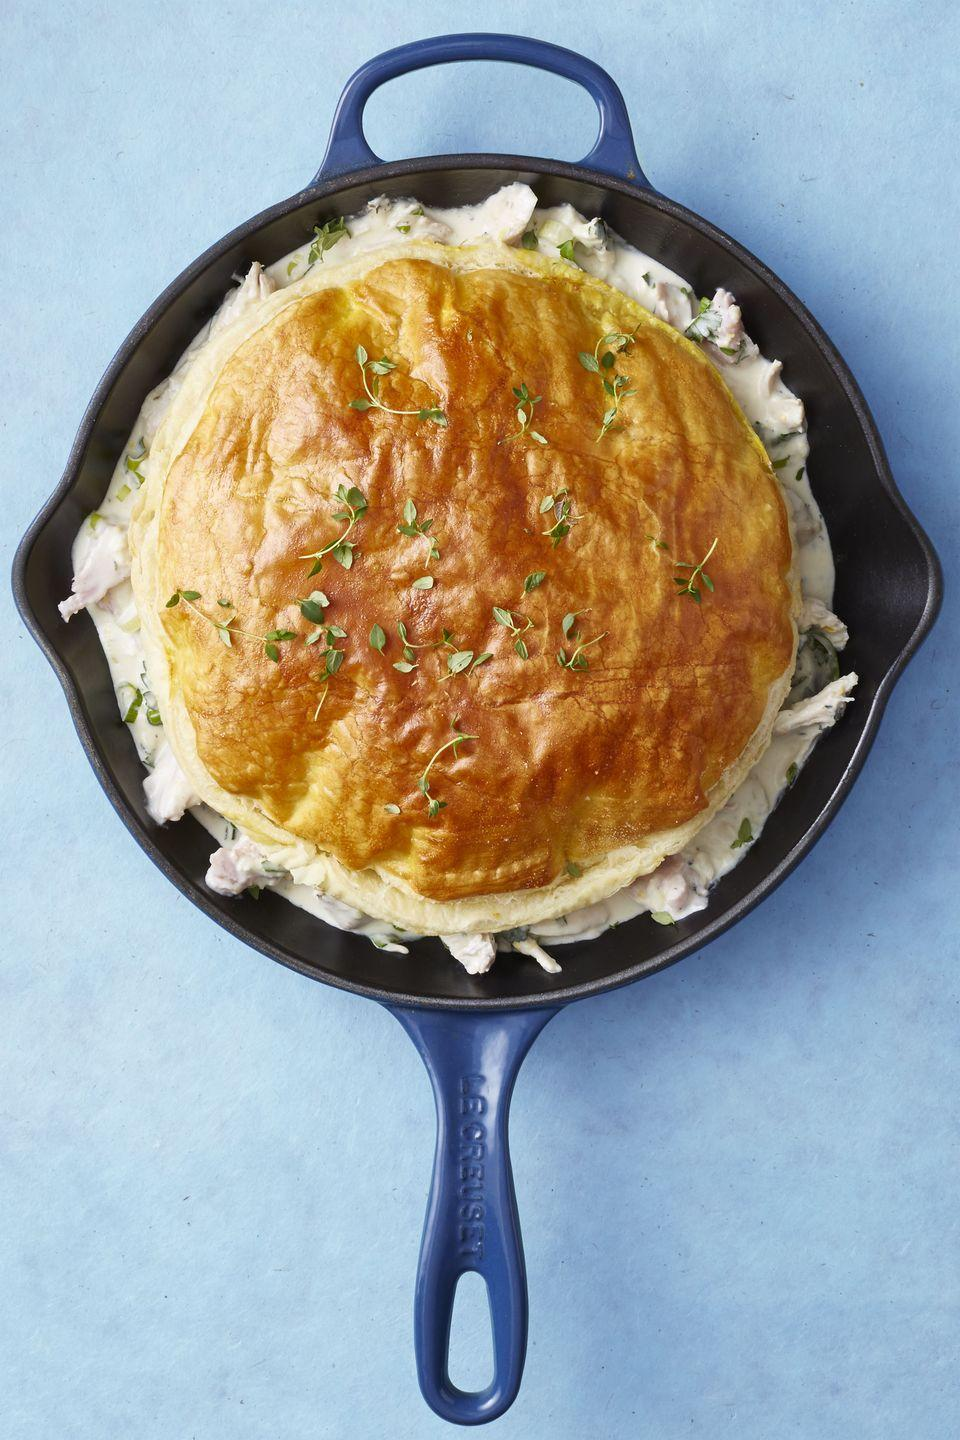 "<p>Chicken pot pie — ahem, we mean<em> turkey</em> pot pie — is a classic at any large family gathering. Serve with a side of greens to make this meal extra hearty.</p><p><em><a href=""https://www.goodhousekeeping.com/food-recipes/easy/a46645/skillet-turkey-pot-pie-recipe/"" rel=""nofollow noopener"" target=""_blank"" data-ylk=""slk:Get the recipe for Skillet Turkey Pot Pie »"" class=""link rapid-noclick-resp"">Get the recipe for Skillet Turkey Pot Pie »</a></em> </p>"